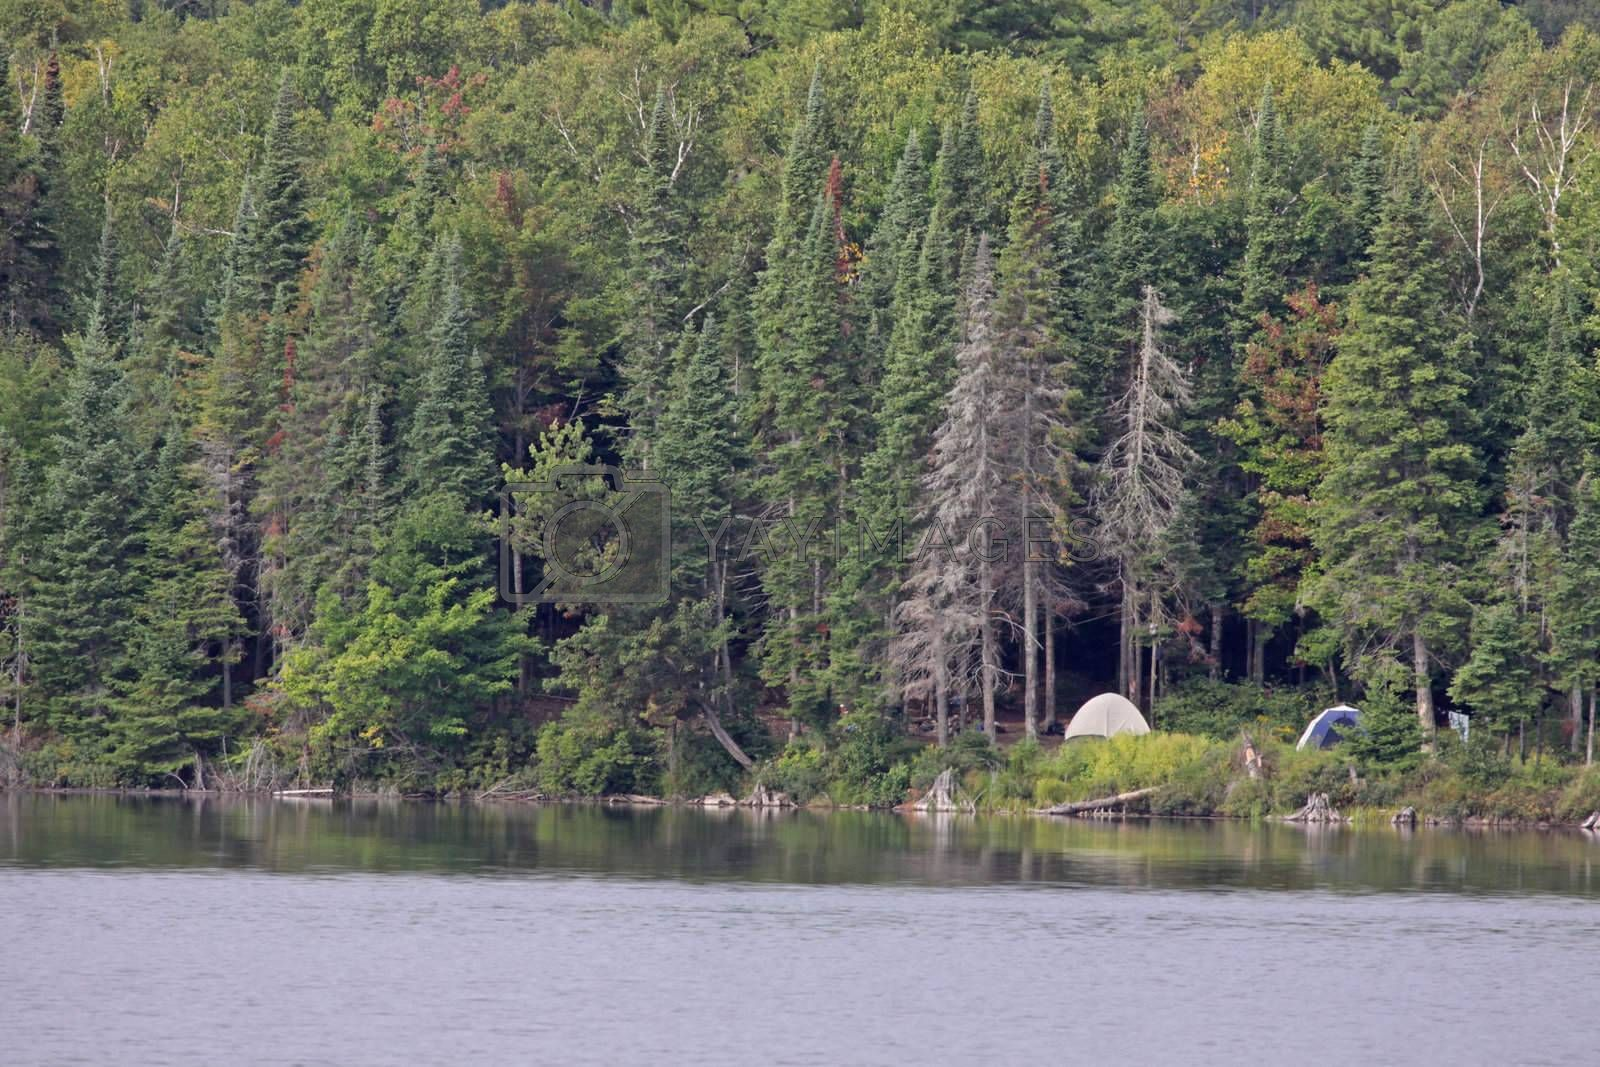 A campsite sitting in on the edge of a lake in Algonquin Provincial Park in Ontario, Canada.